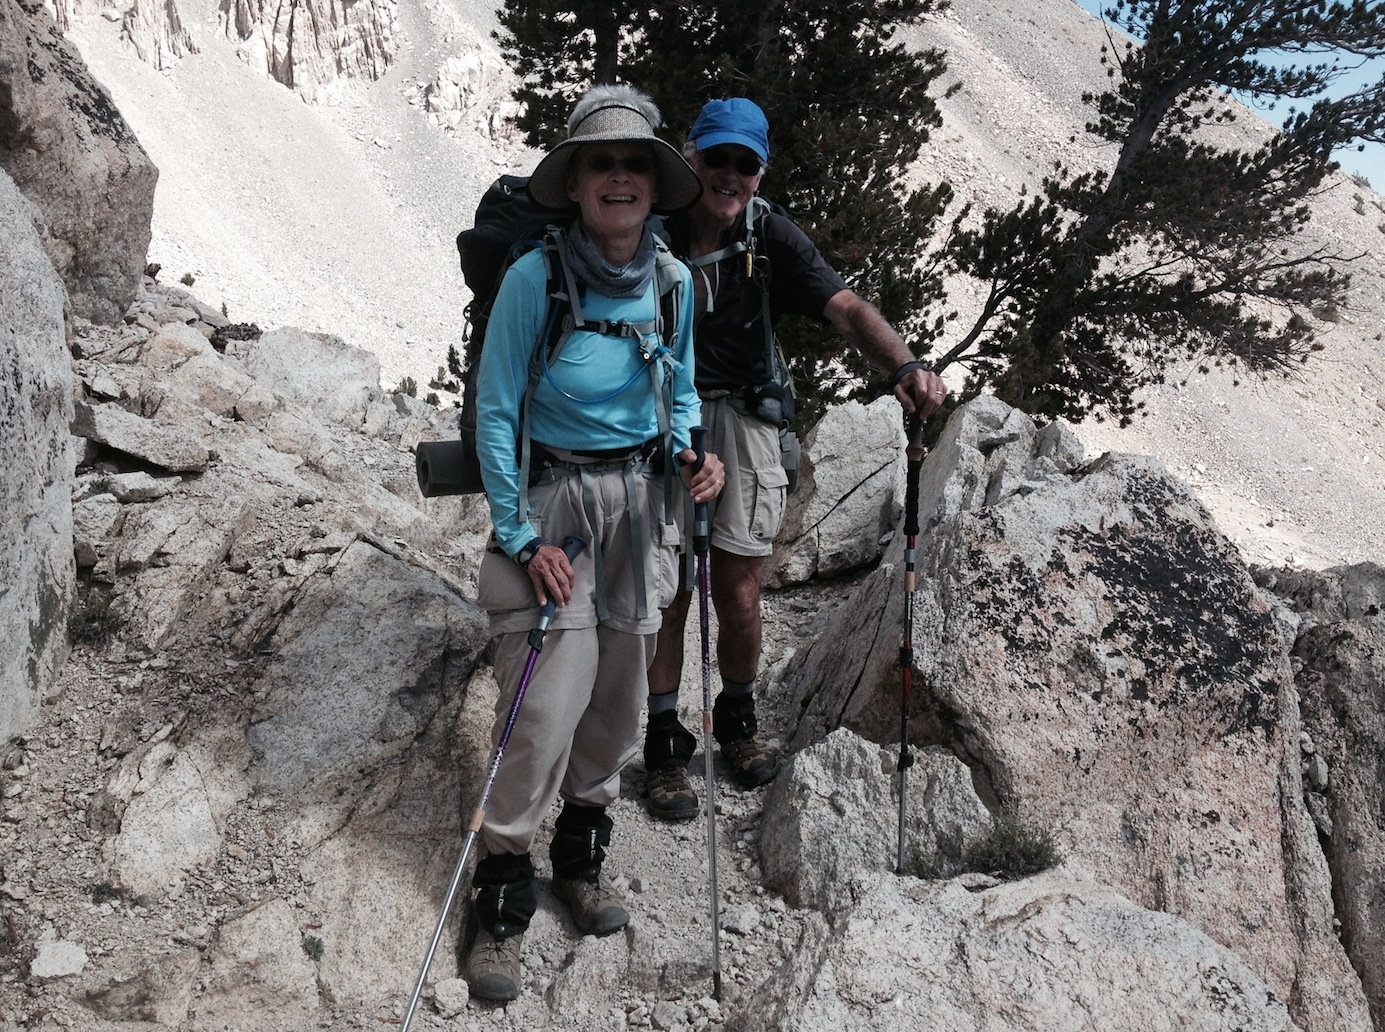 JMT hikers Pat and Mike from Berkeley near Heart Lake on their way to Kearsarge Pass